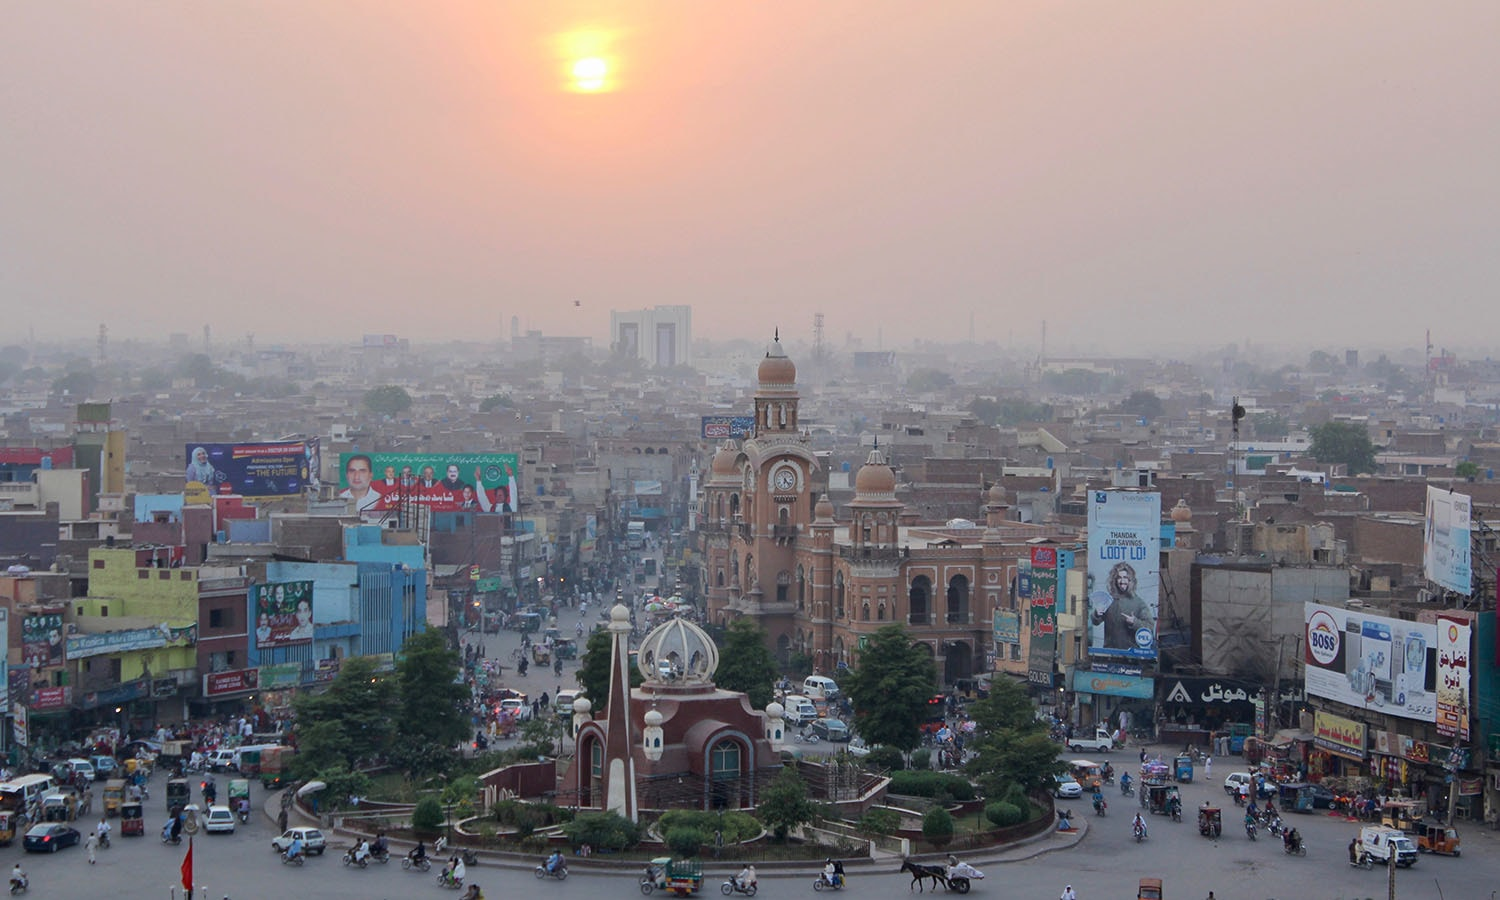 Sunset over central Multan